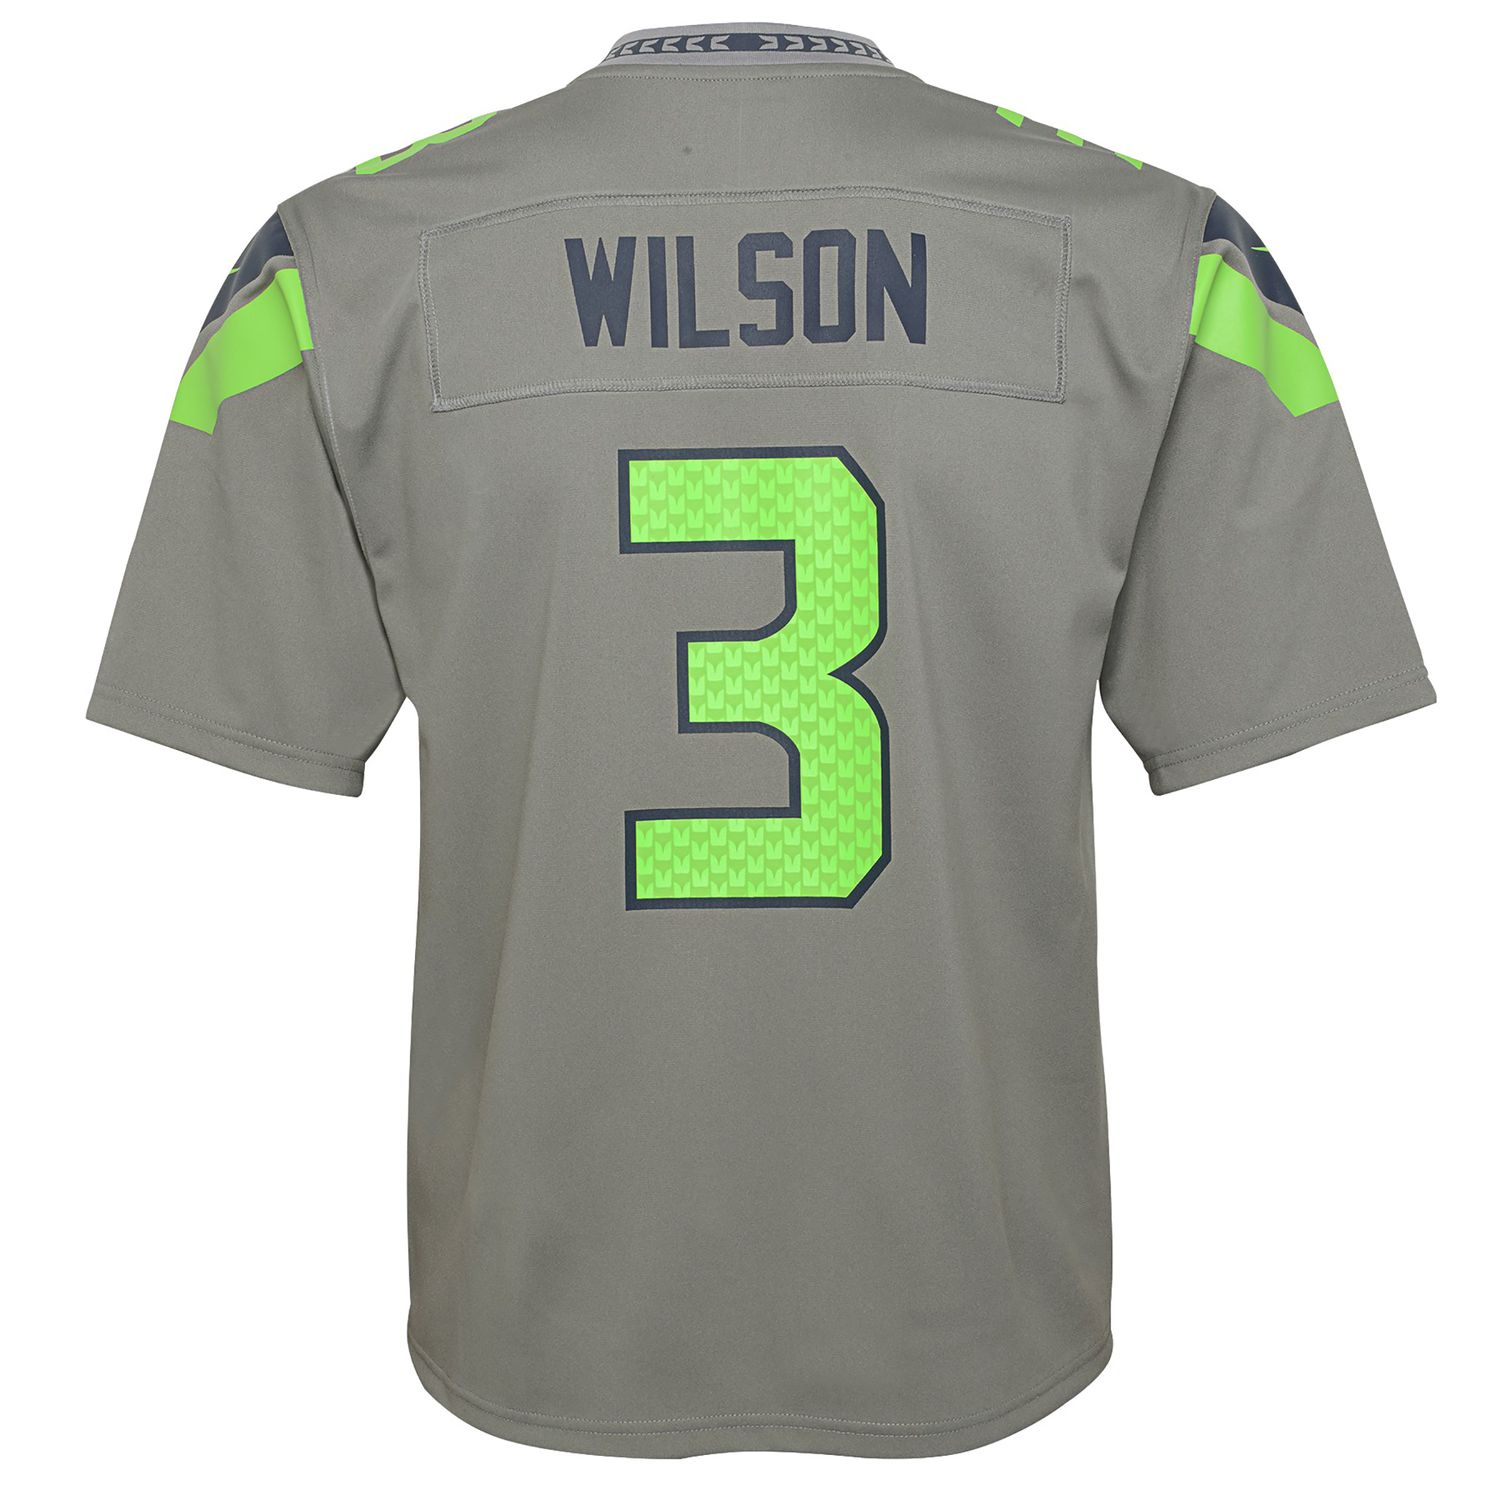 newest 446a5 31a05 russell wilson jersey youth small